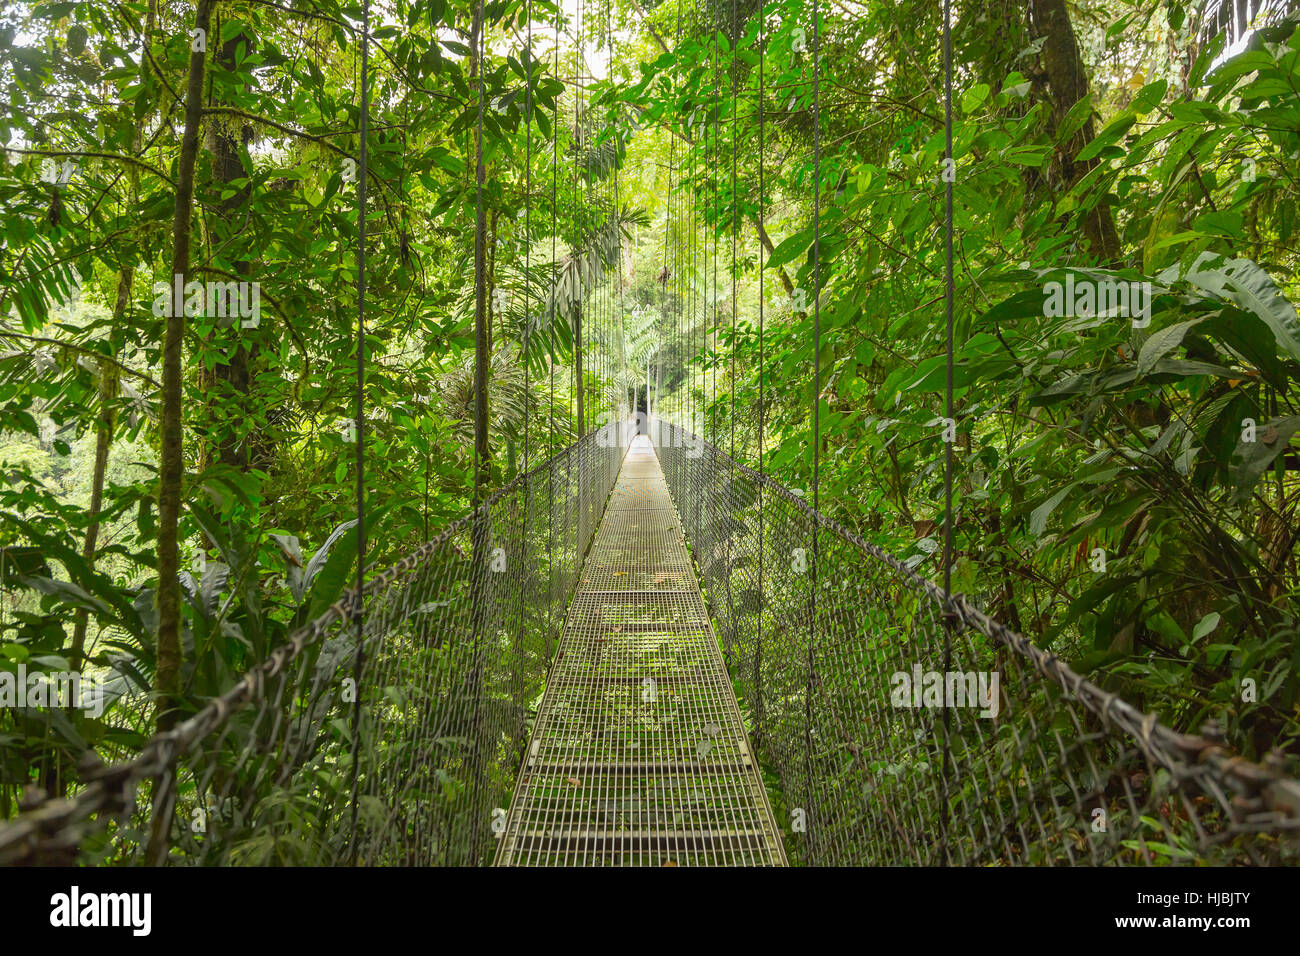 Pont suspendu au parc naturel de forêt tropicale au Costa Rica Photo Stock